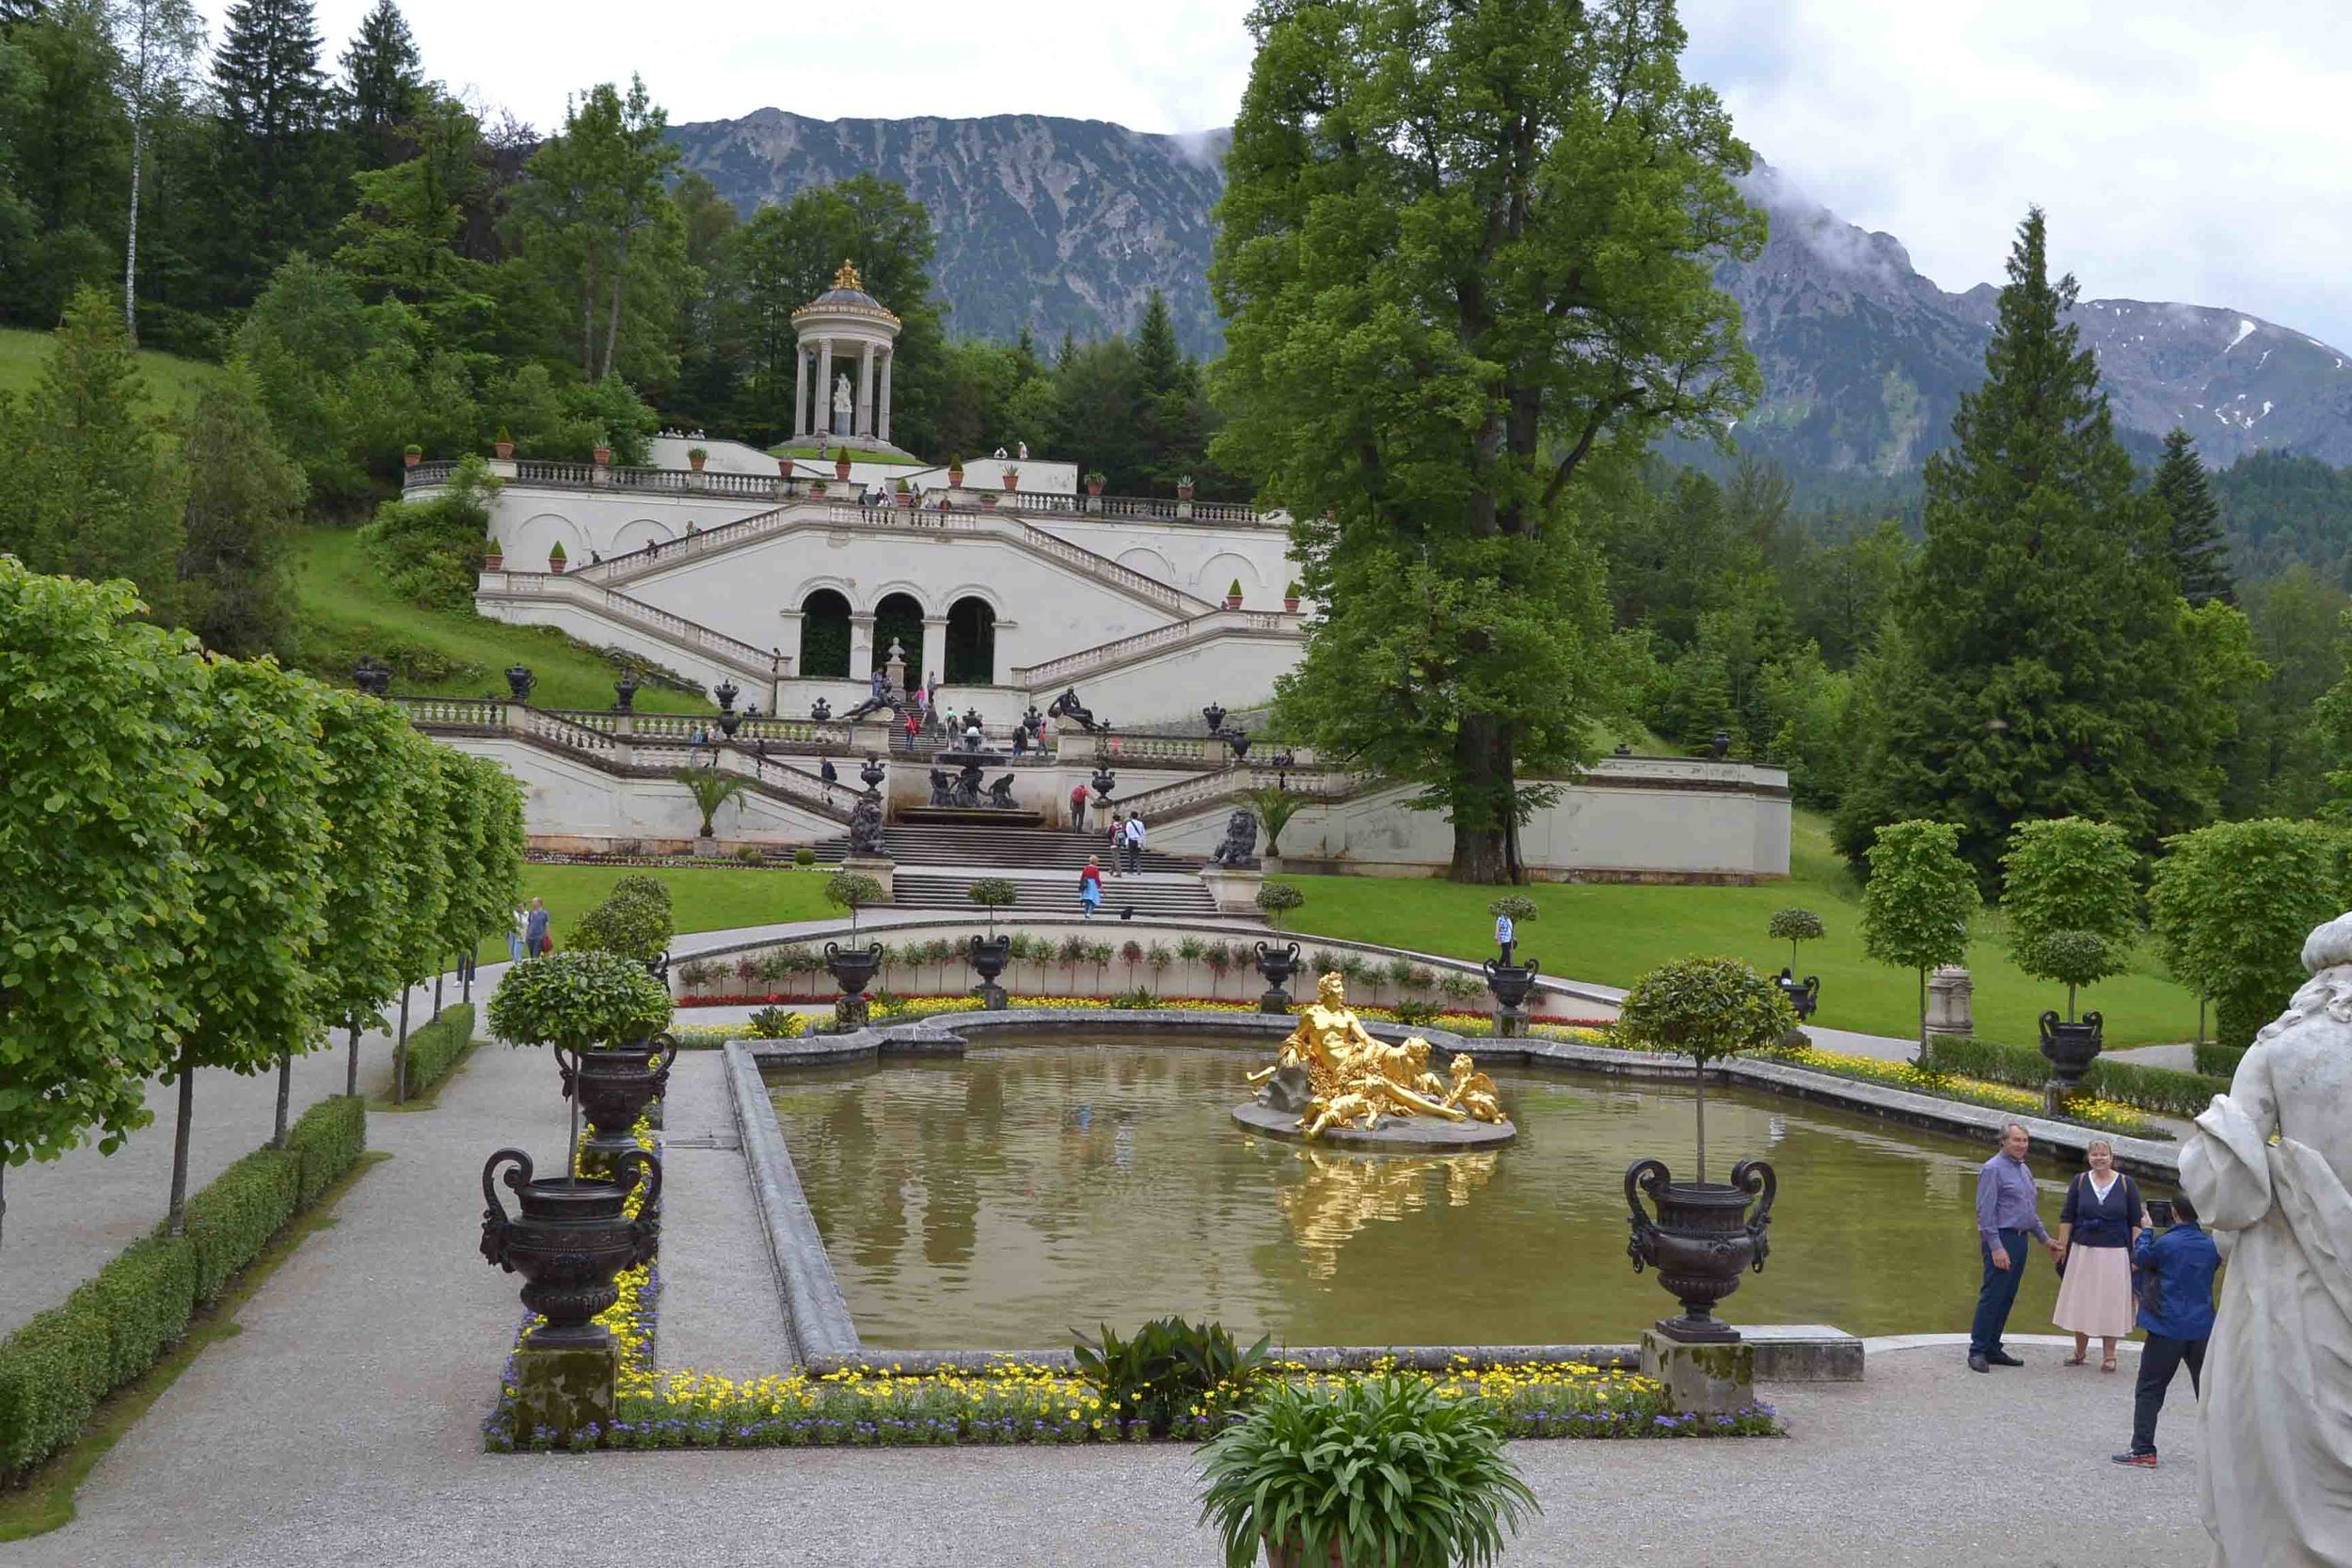 Formal Gardens in front of the Palace